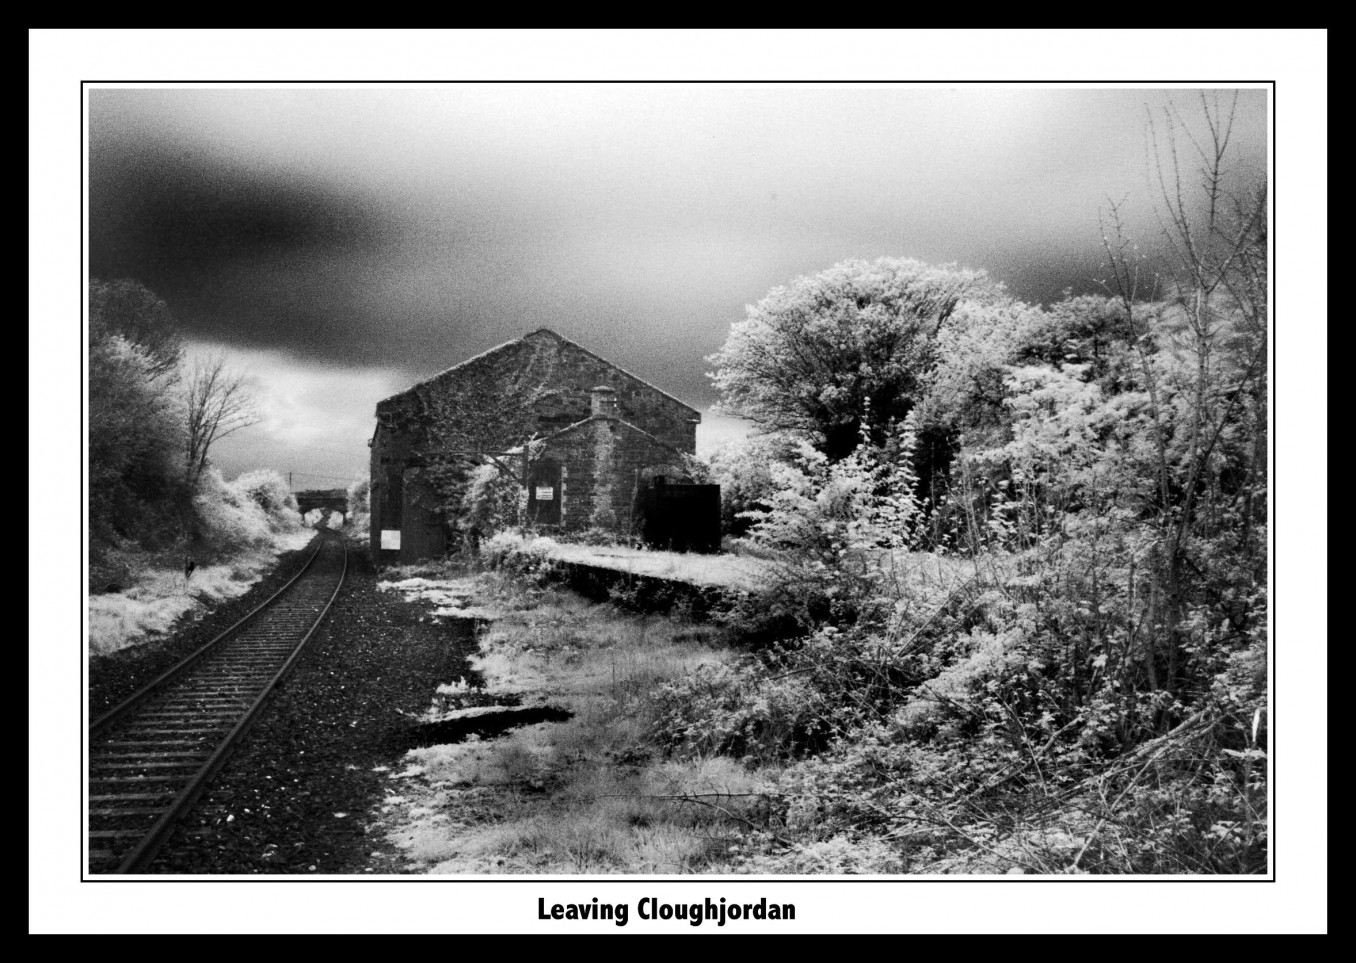 Leaving Cloughjordan slideshow